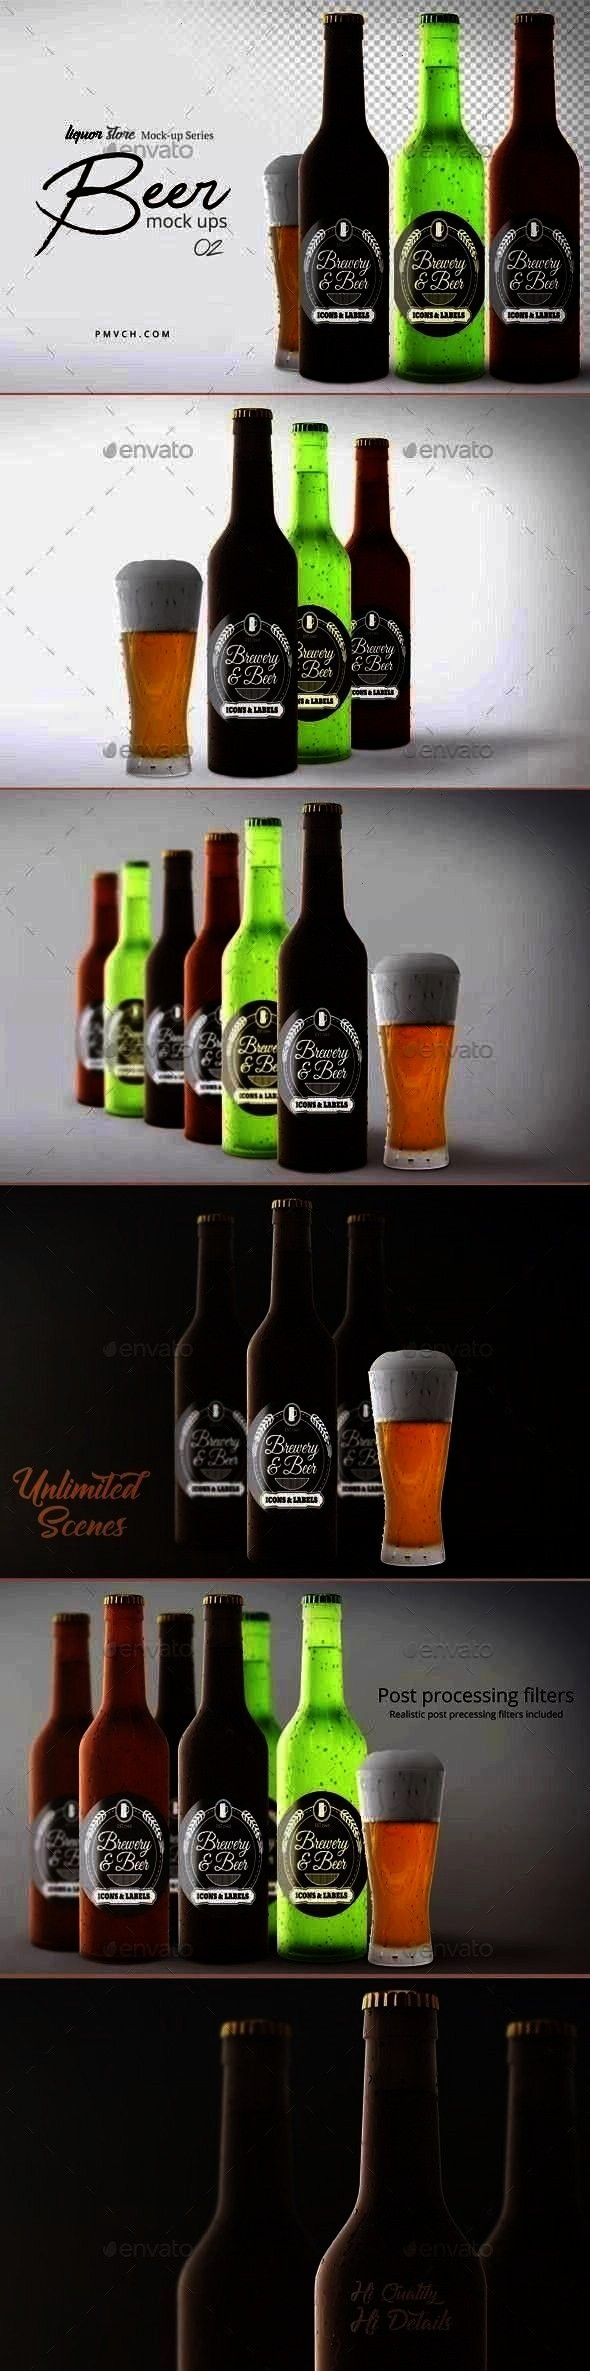 food and beverage packaging50 clever bizarre and beautiful packaging designs Design Shack  Beverage packaging 50 clever bizarre and beautiful packaging designs Design Sha...